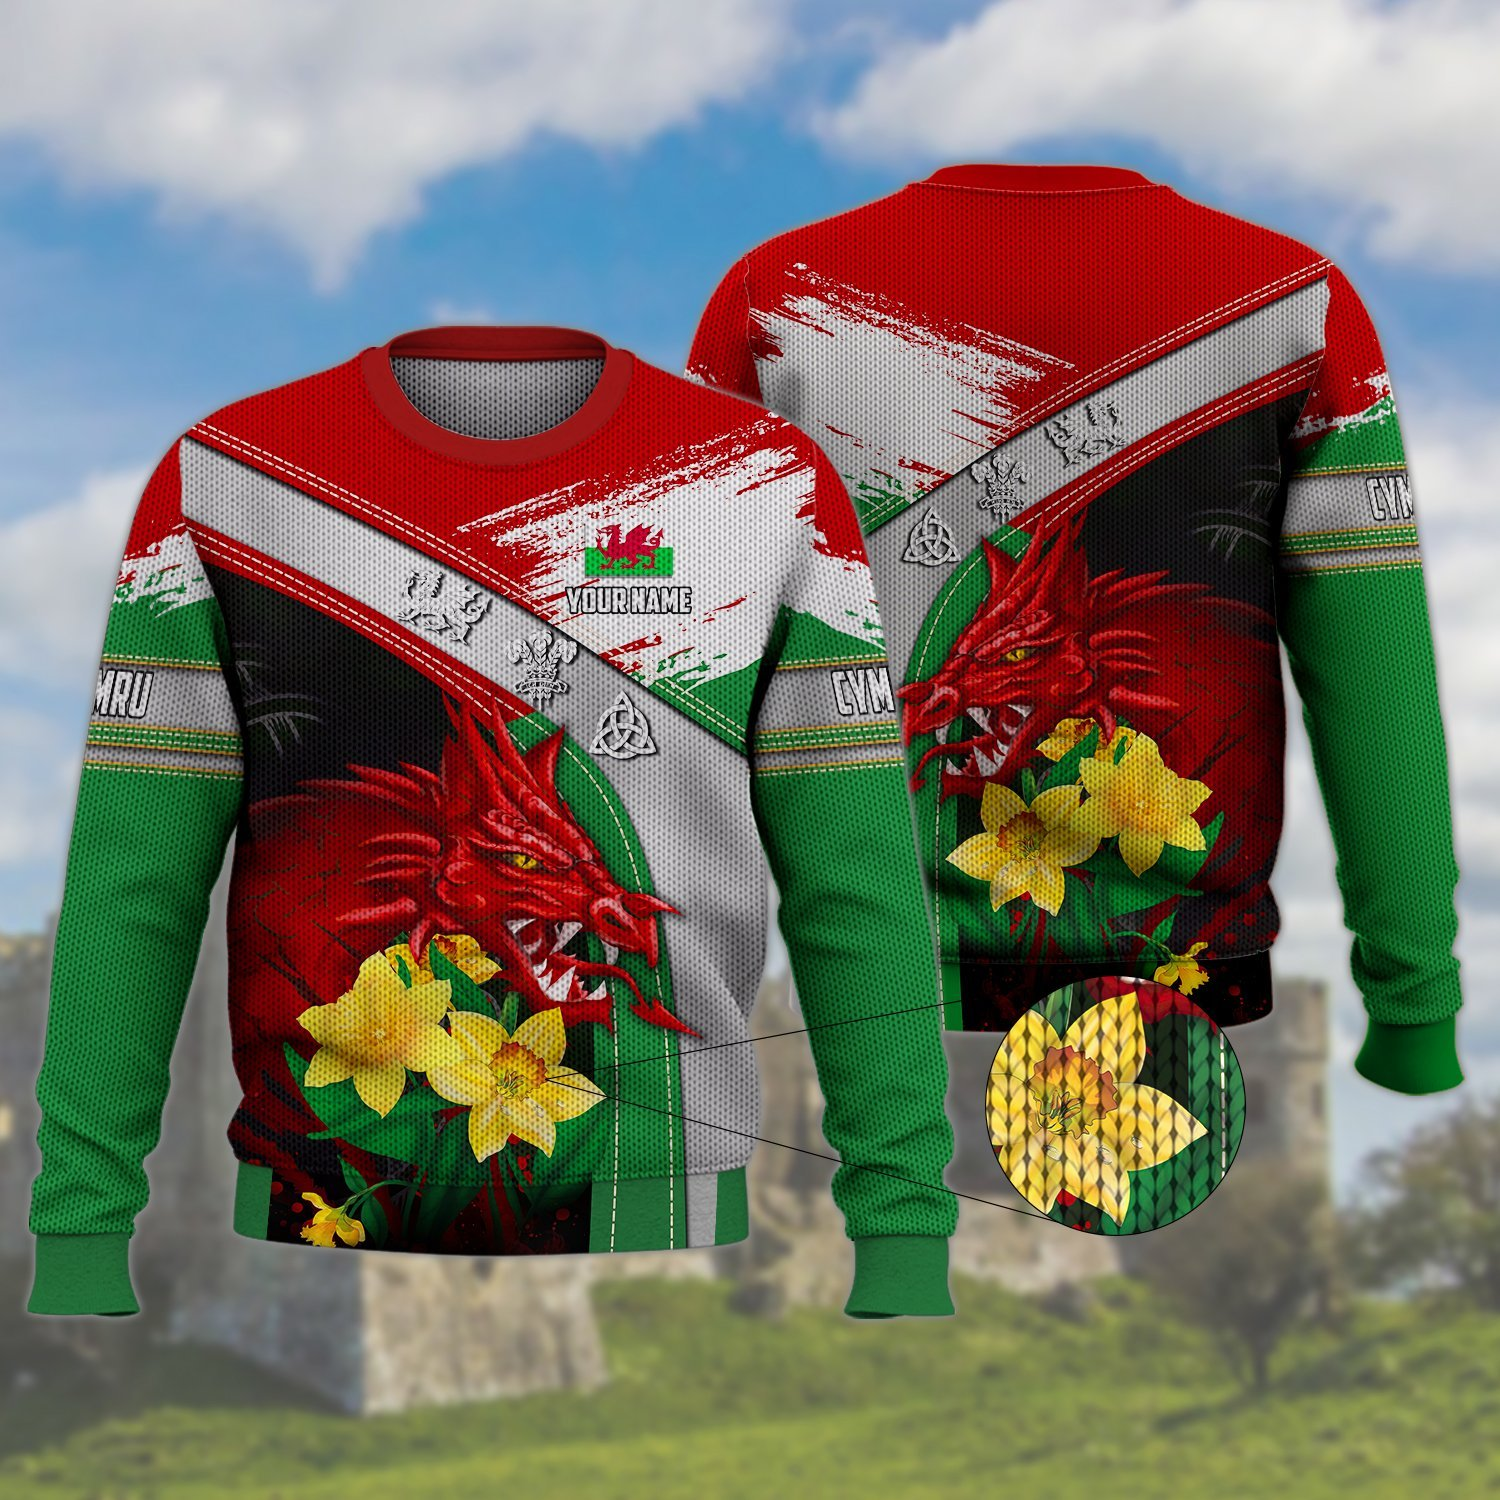 WALES RED DRAGON WITH FLOWER CUSTOM ULGY SWEATER